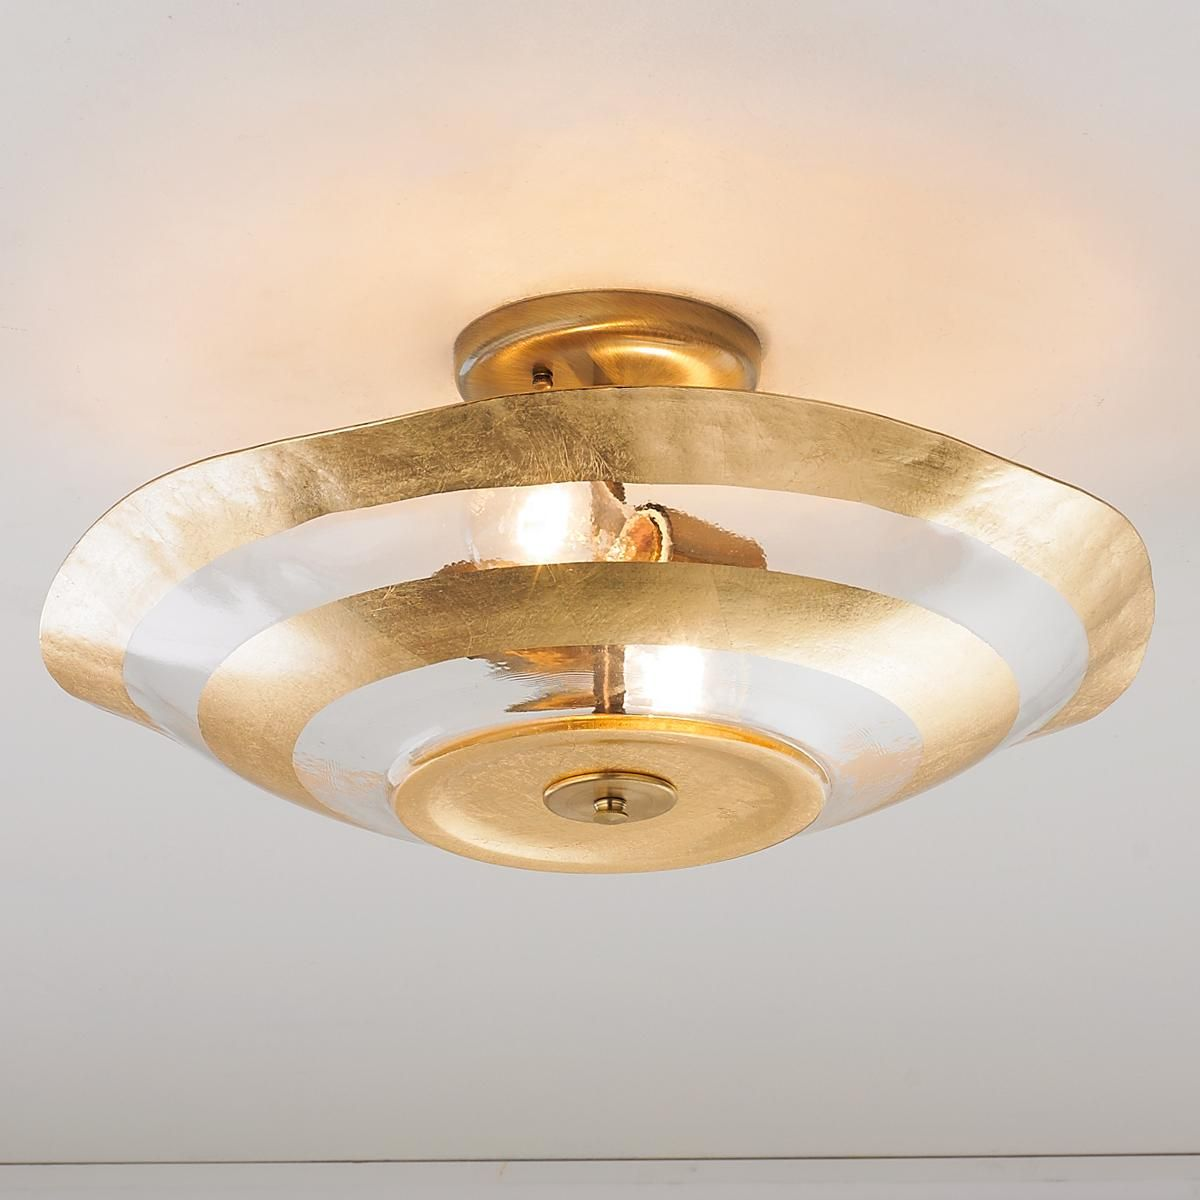 Metallic Rings Glass Ceiling Light Metallic Rings In Rich Gold Or Silver Leaf Add Sophisticated Sparkle Gold Ceiling Light Ceiling Lights Glass Ceiling Lights